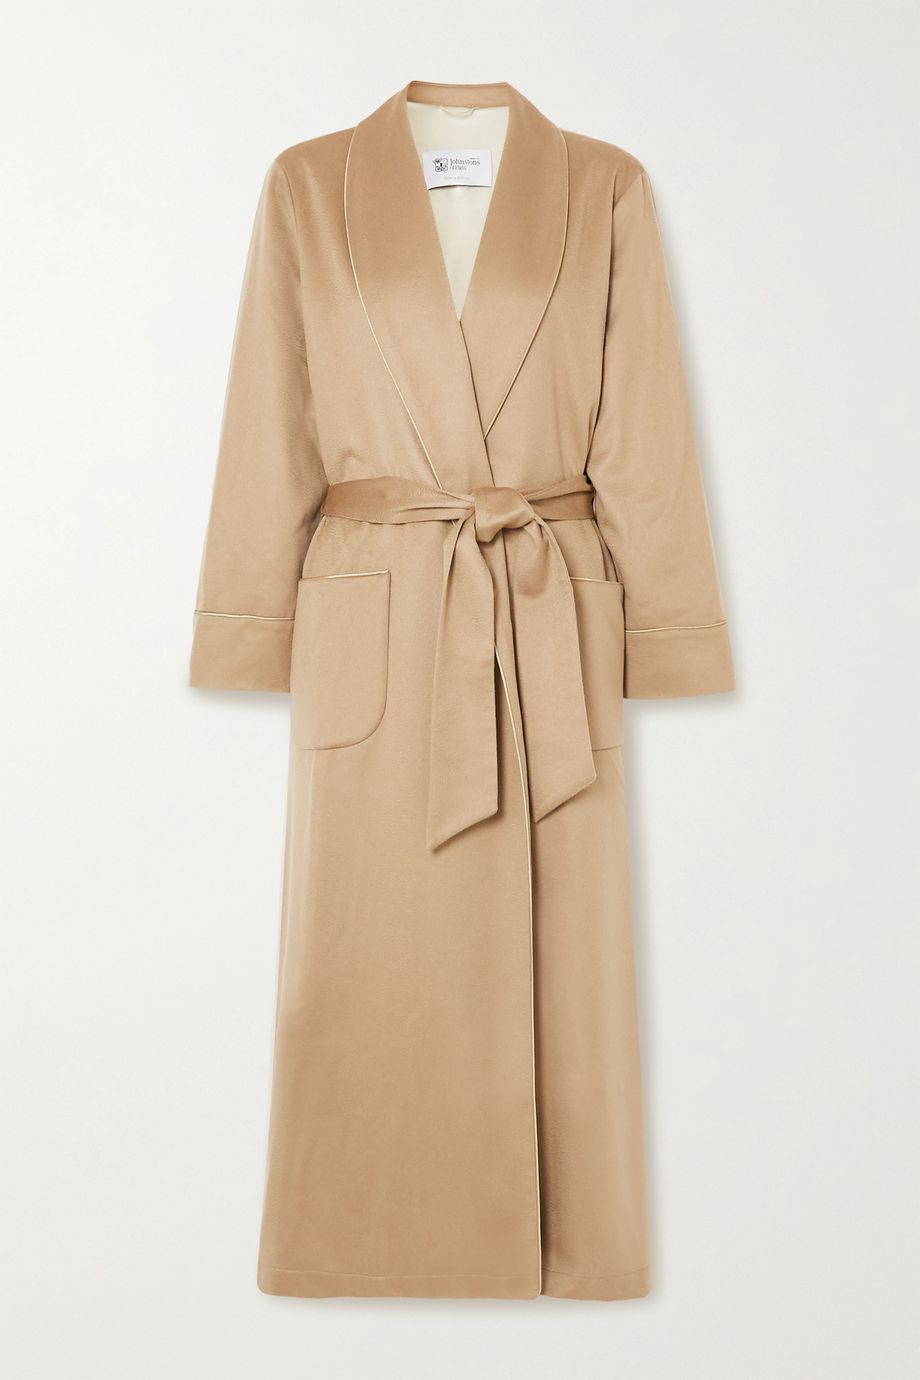 Johnstons of Elgin Belted cashmere robe